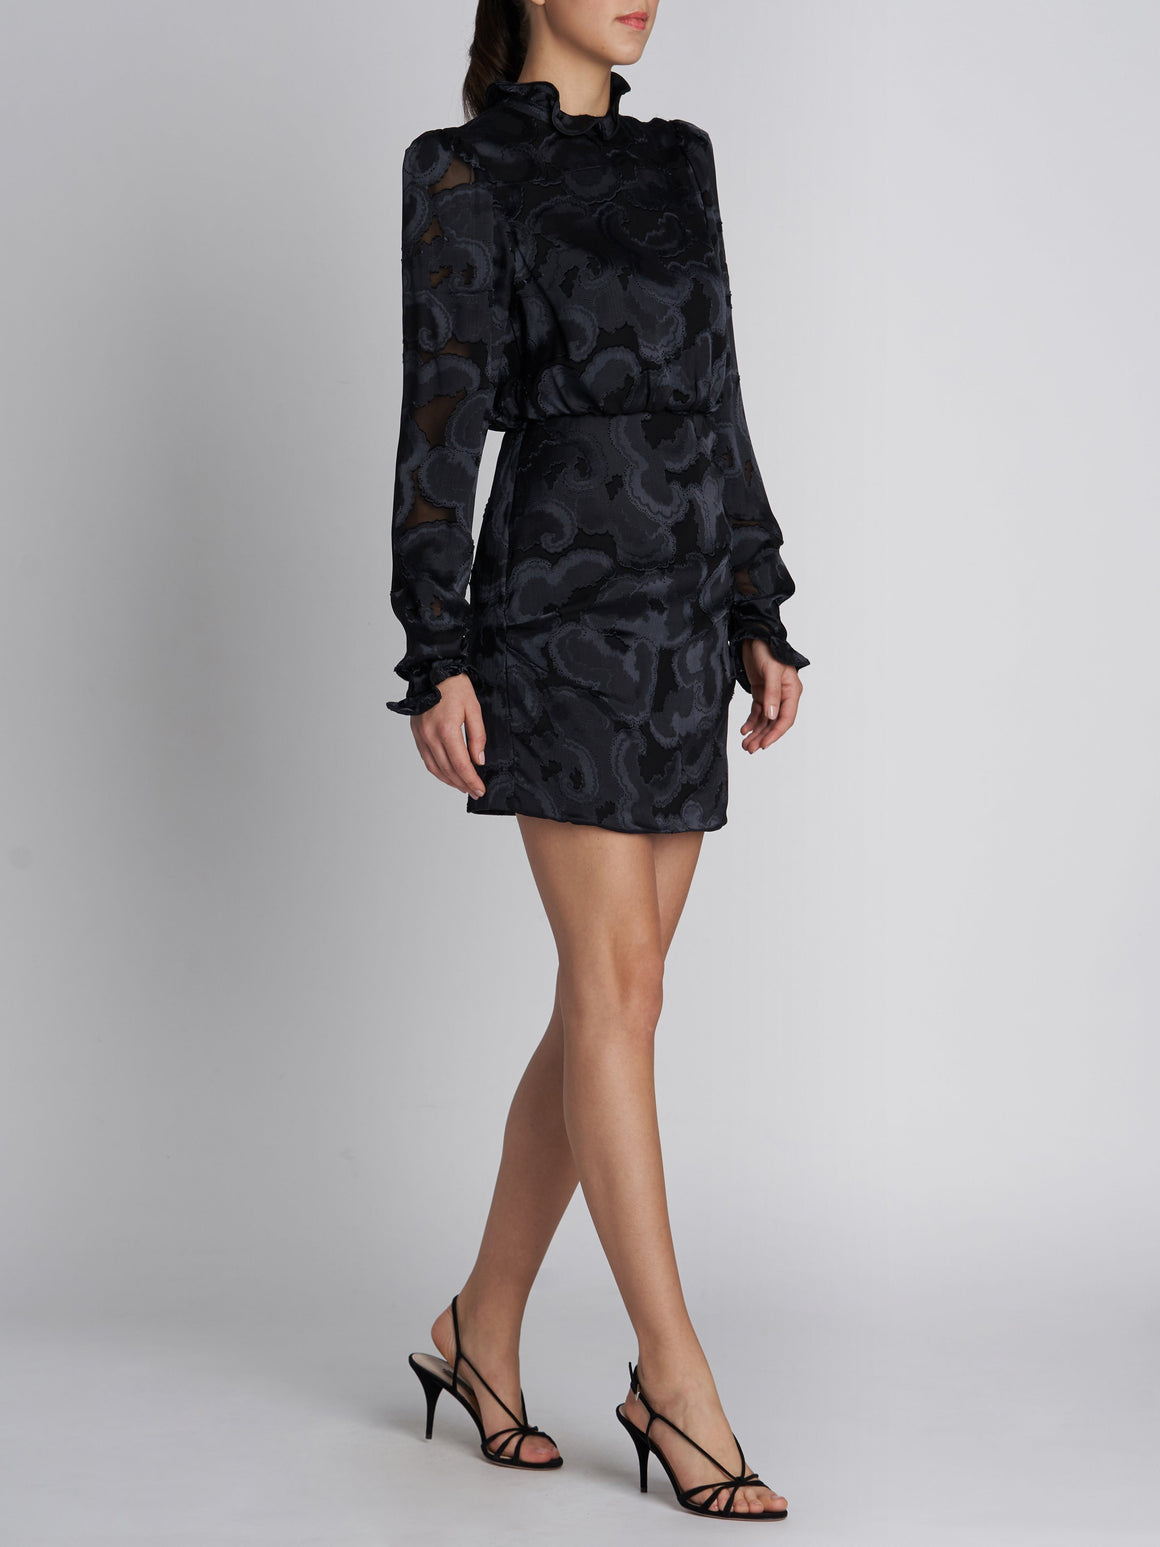 RINA B BLACK JACQUARD DRESS